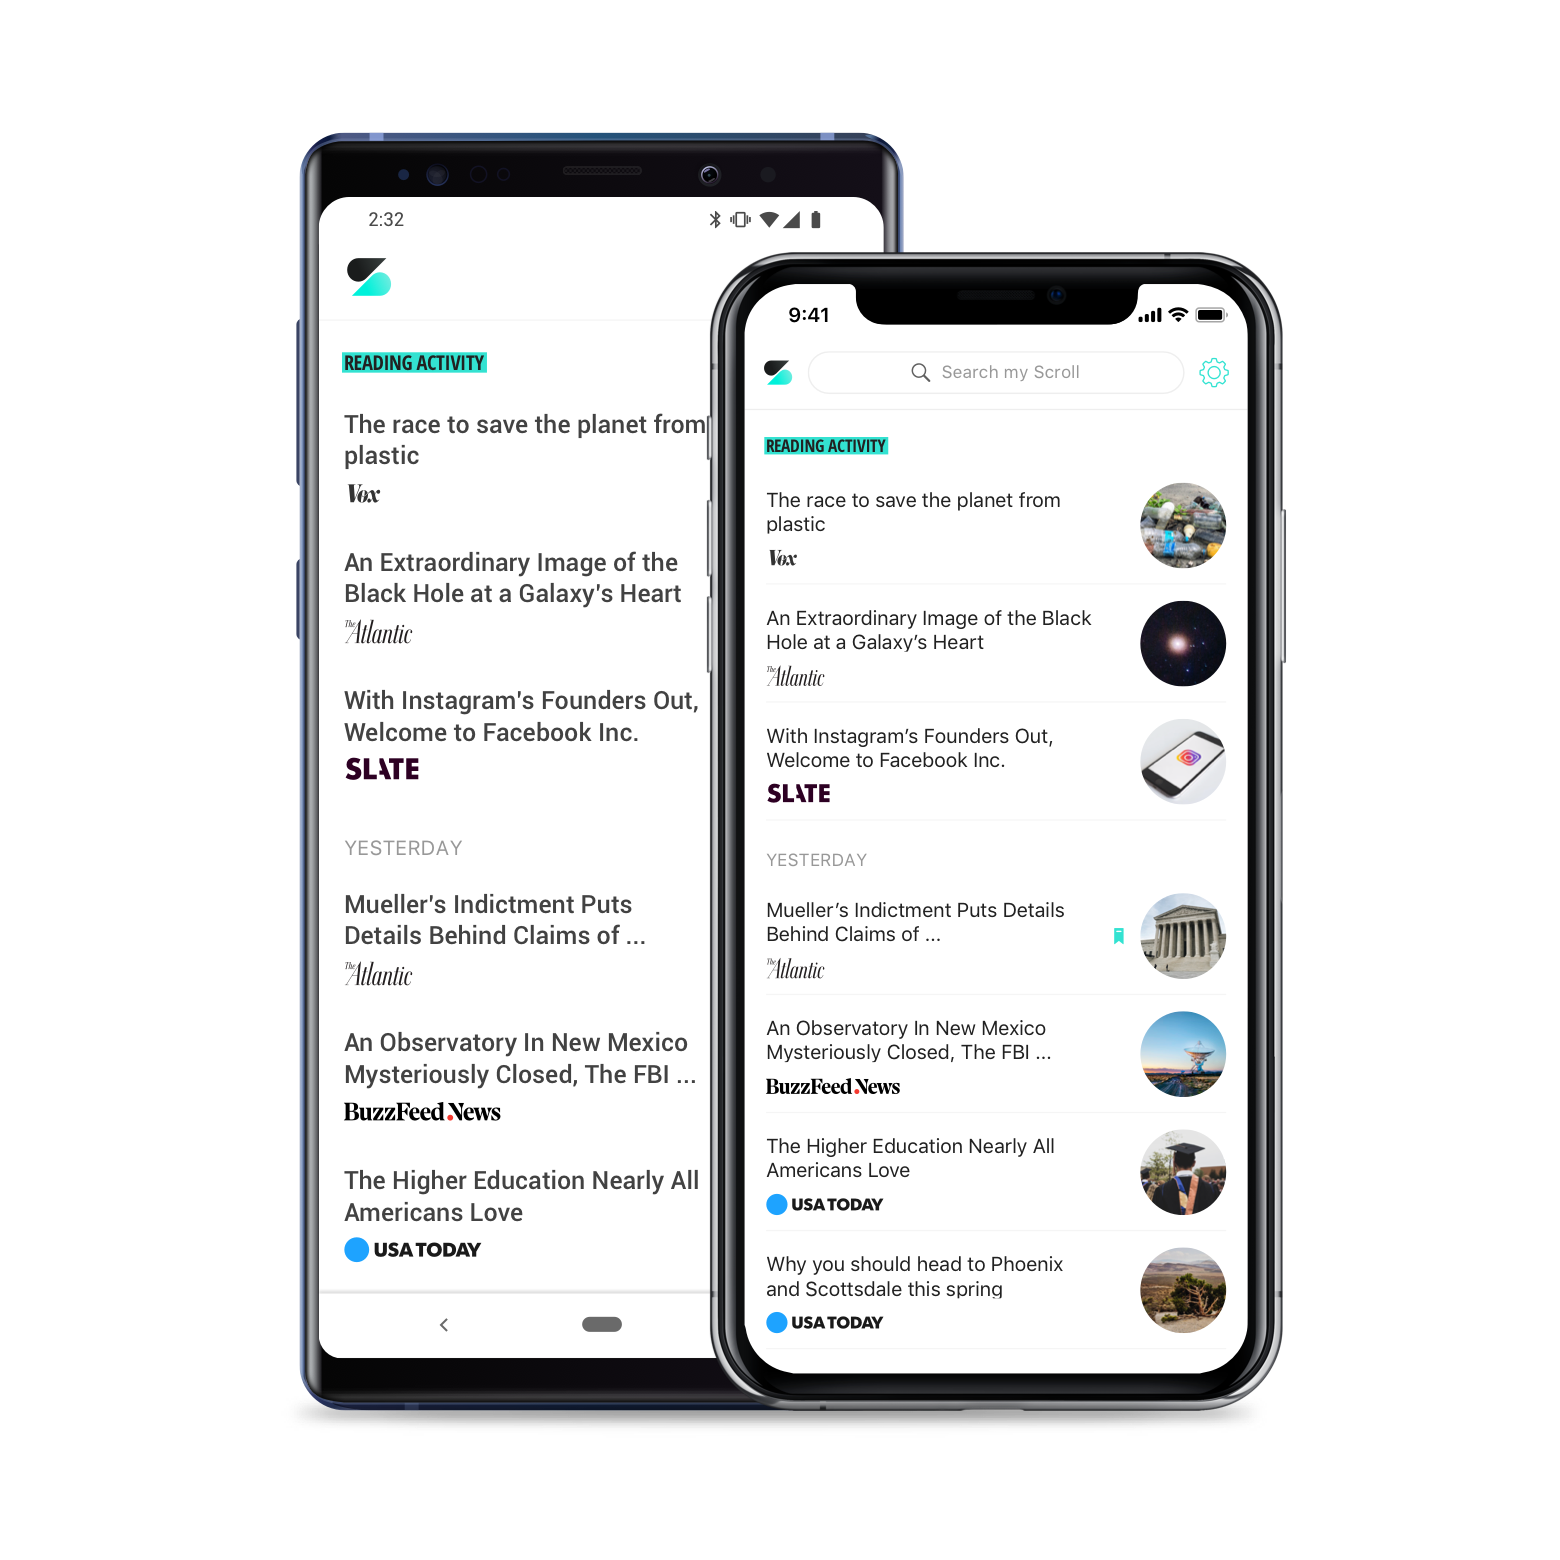 An Android and iPhone X show the reading history page of the Scroll app.